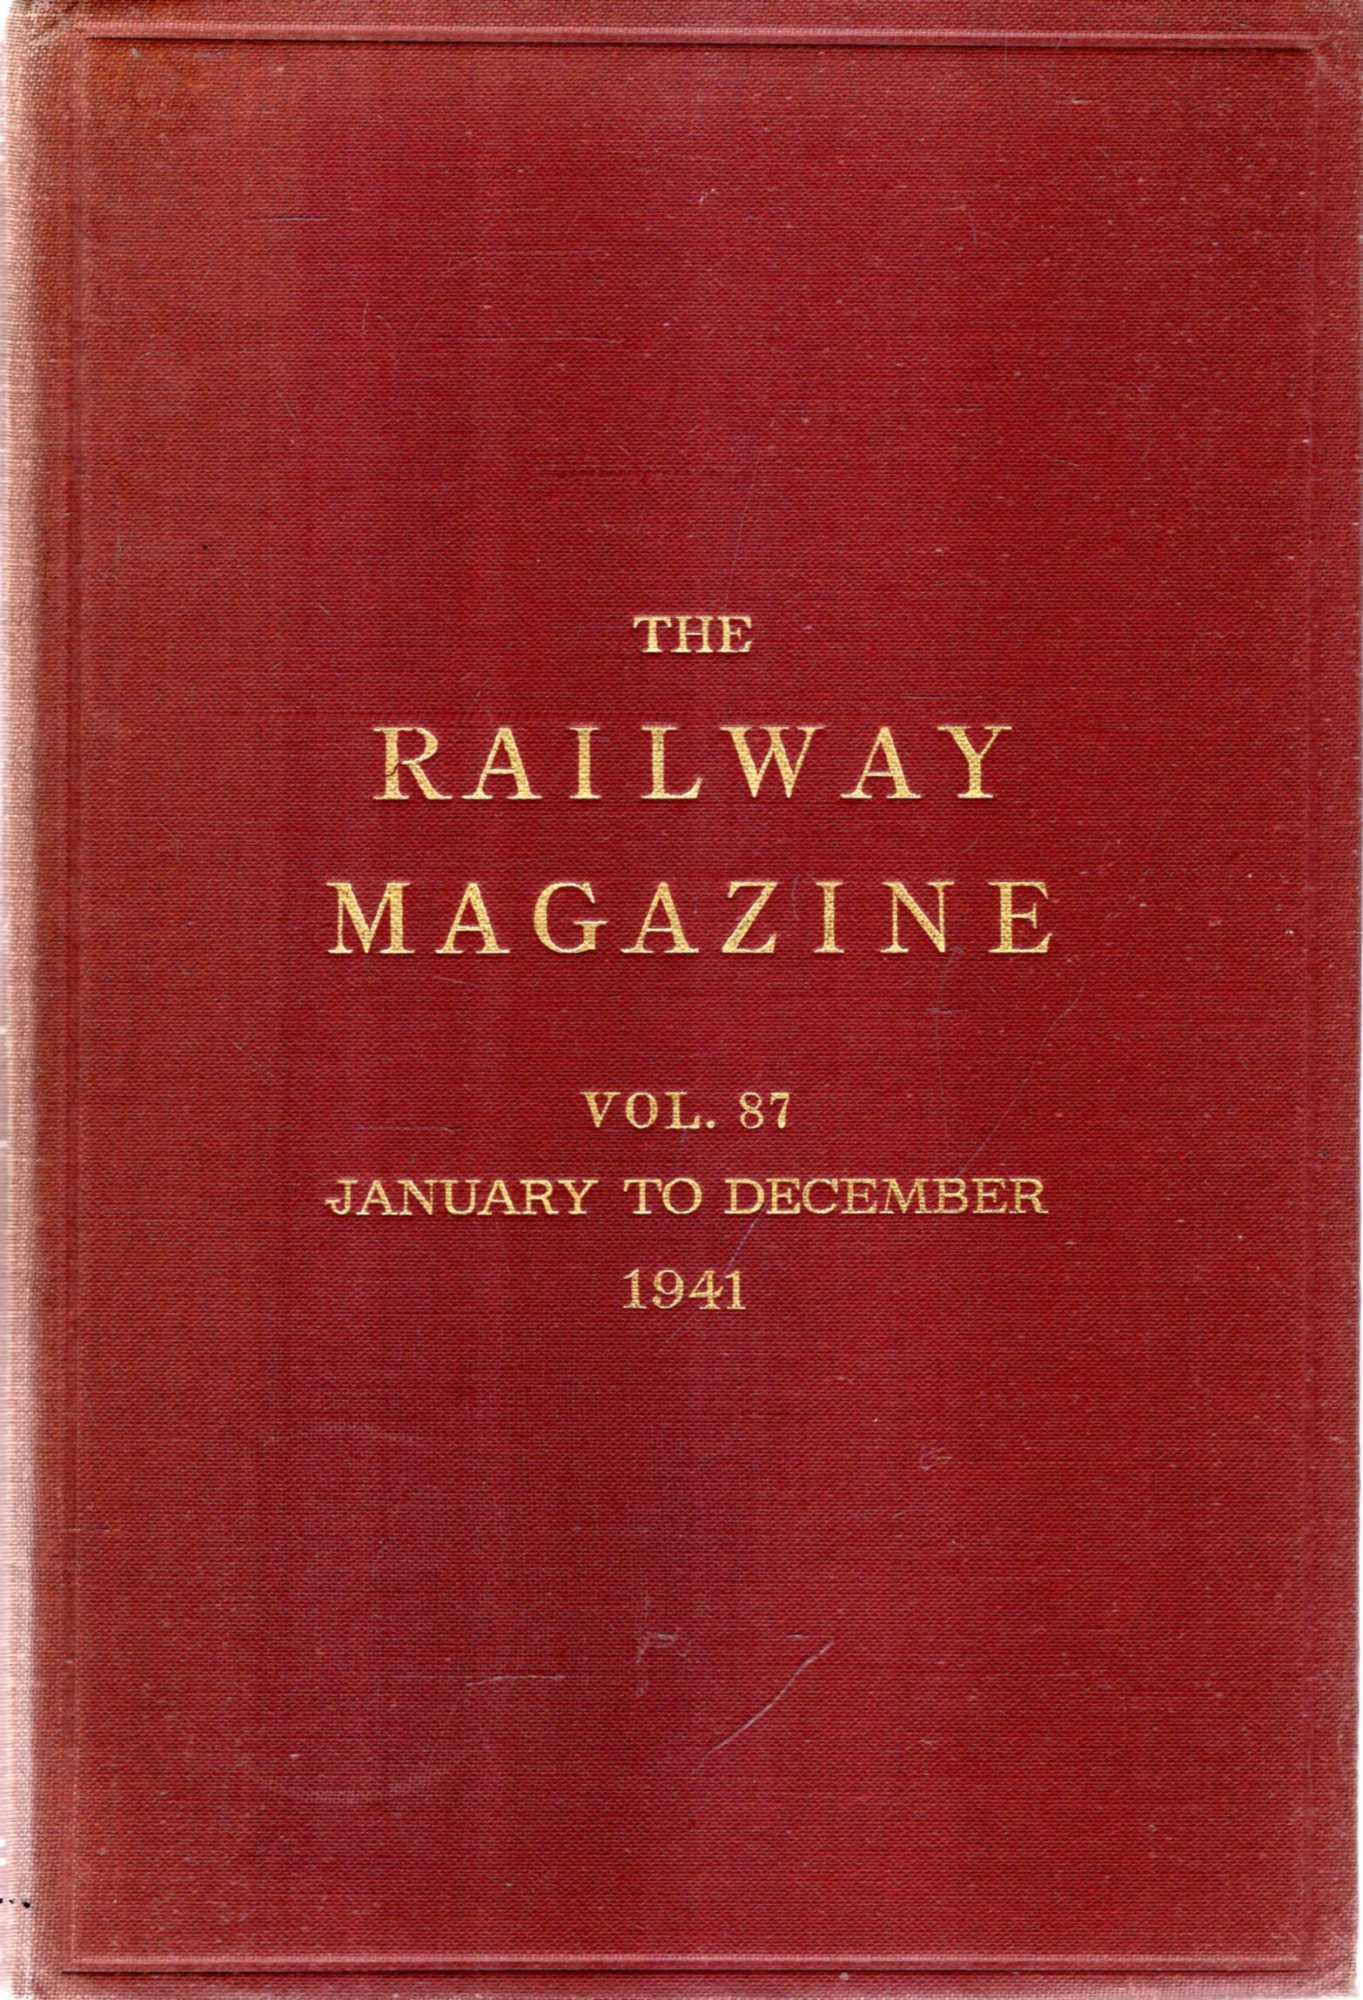 Image for The Railway Magazine volume 87 January - December 1941